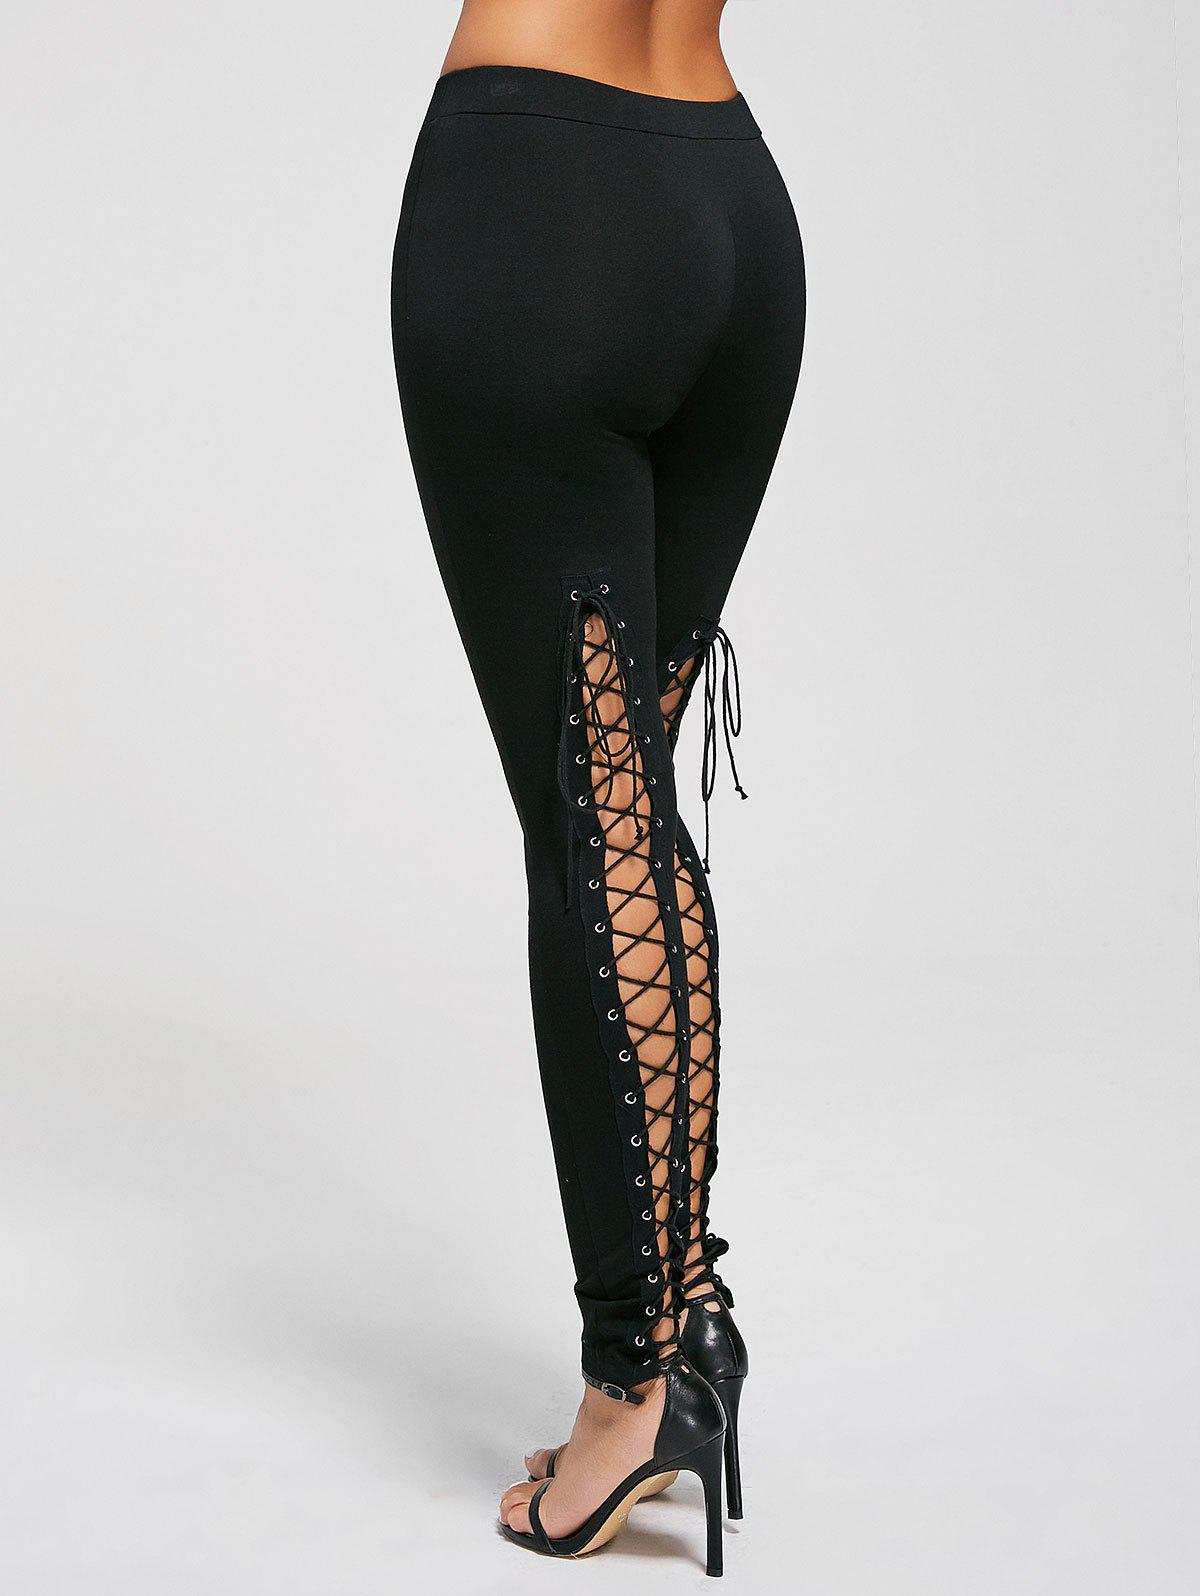 Lace Up Cut Out Leggings - BLACK XL